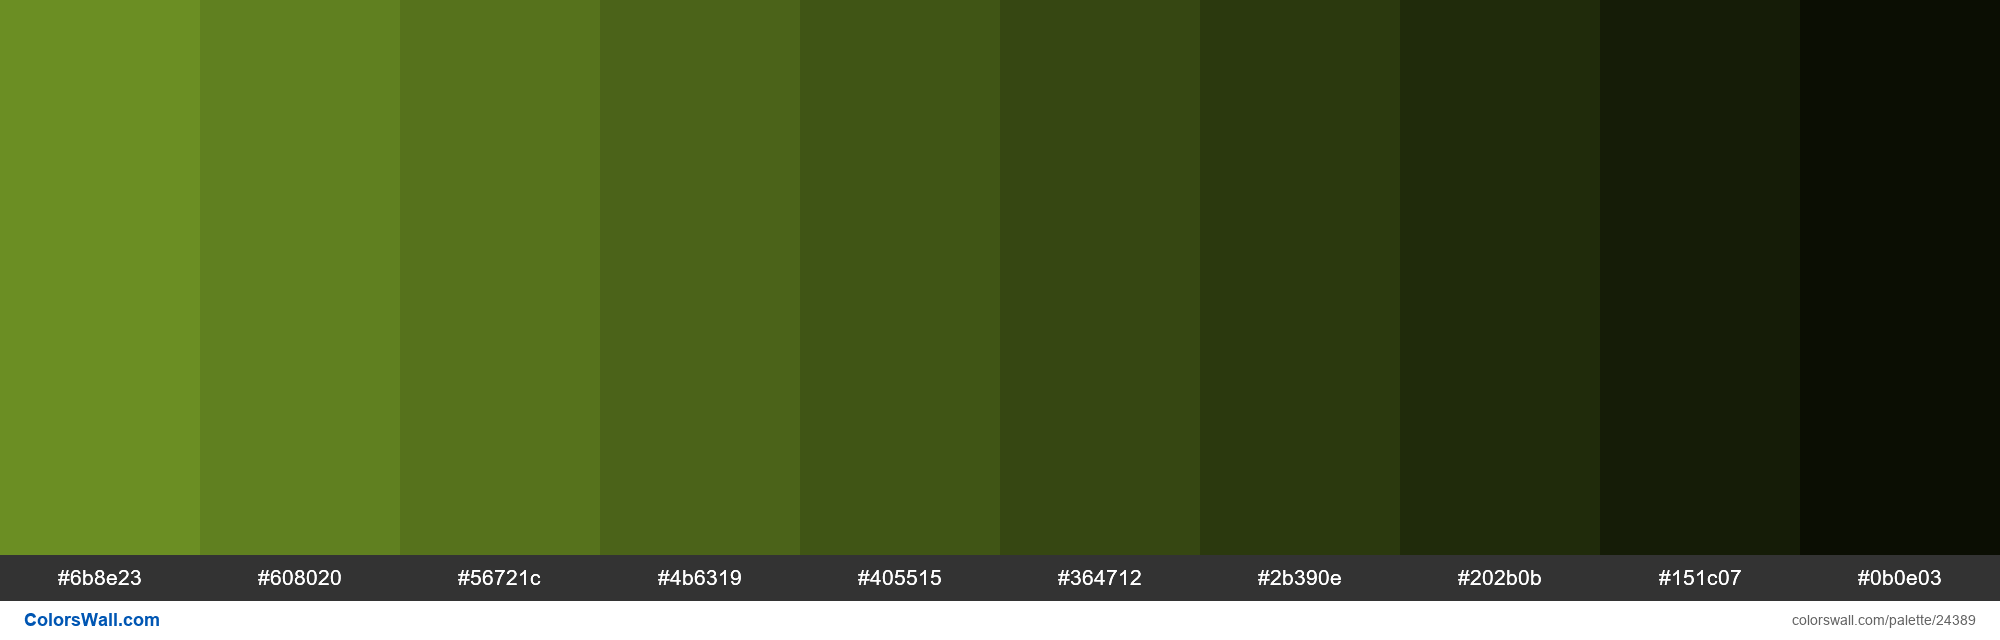 Shades of Olive Drab #6B8E23 hex color - #24389